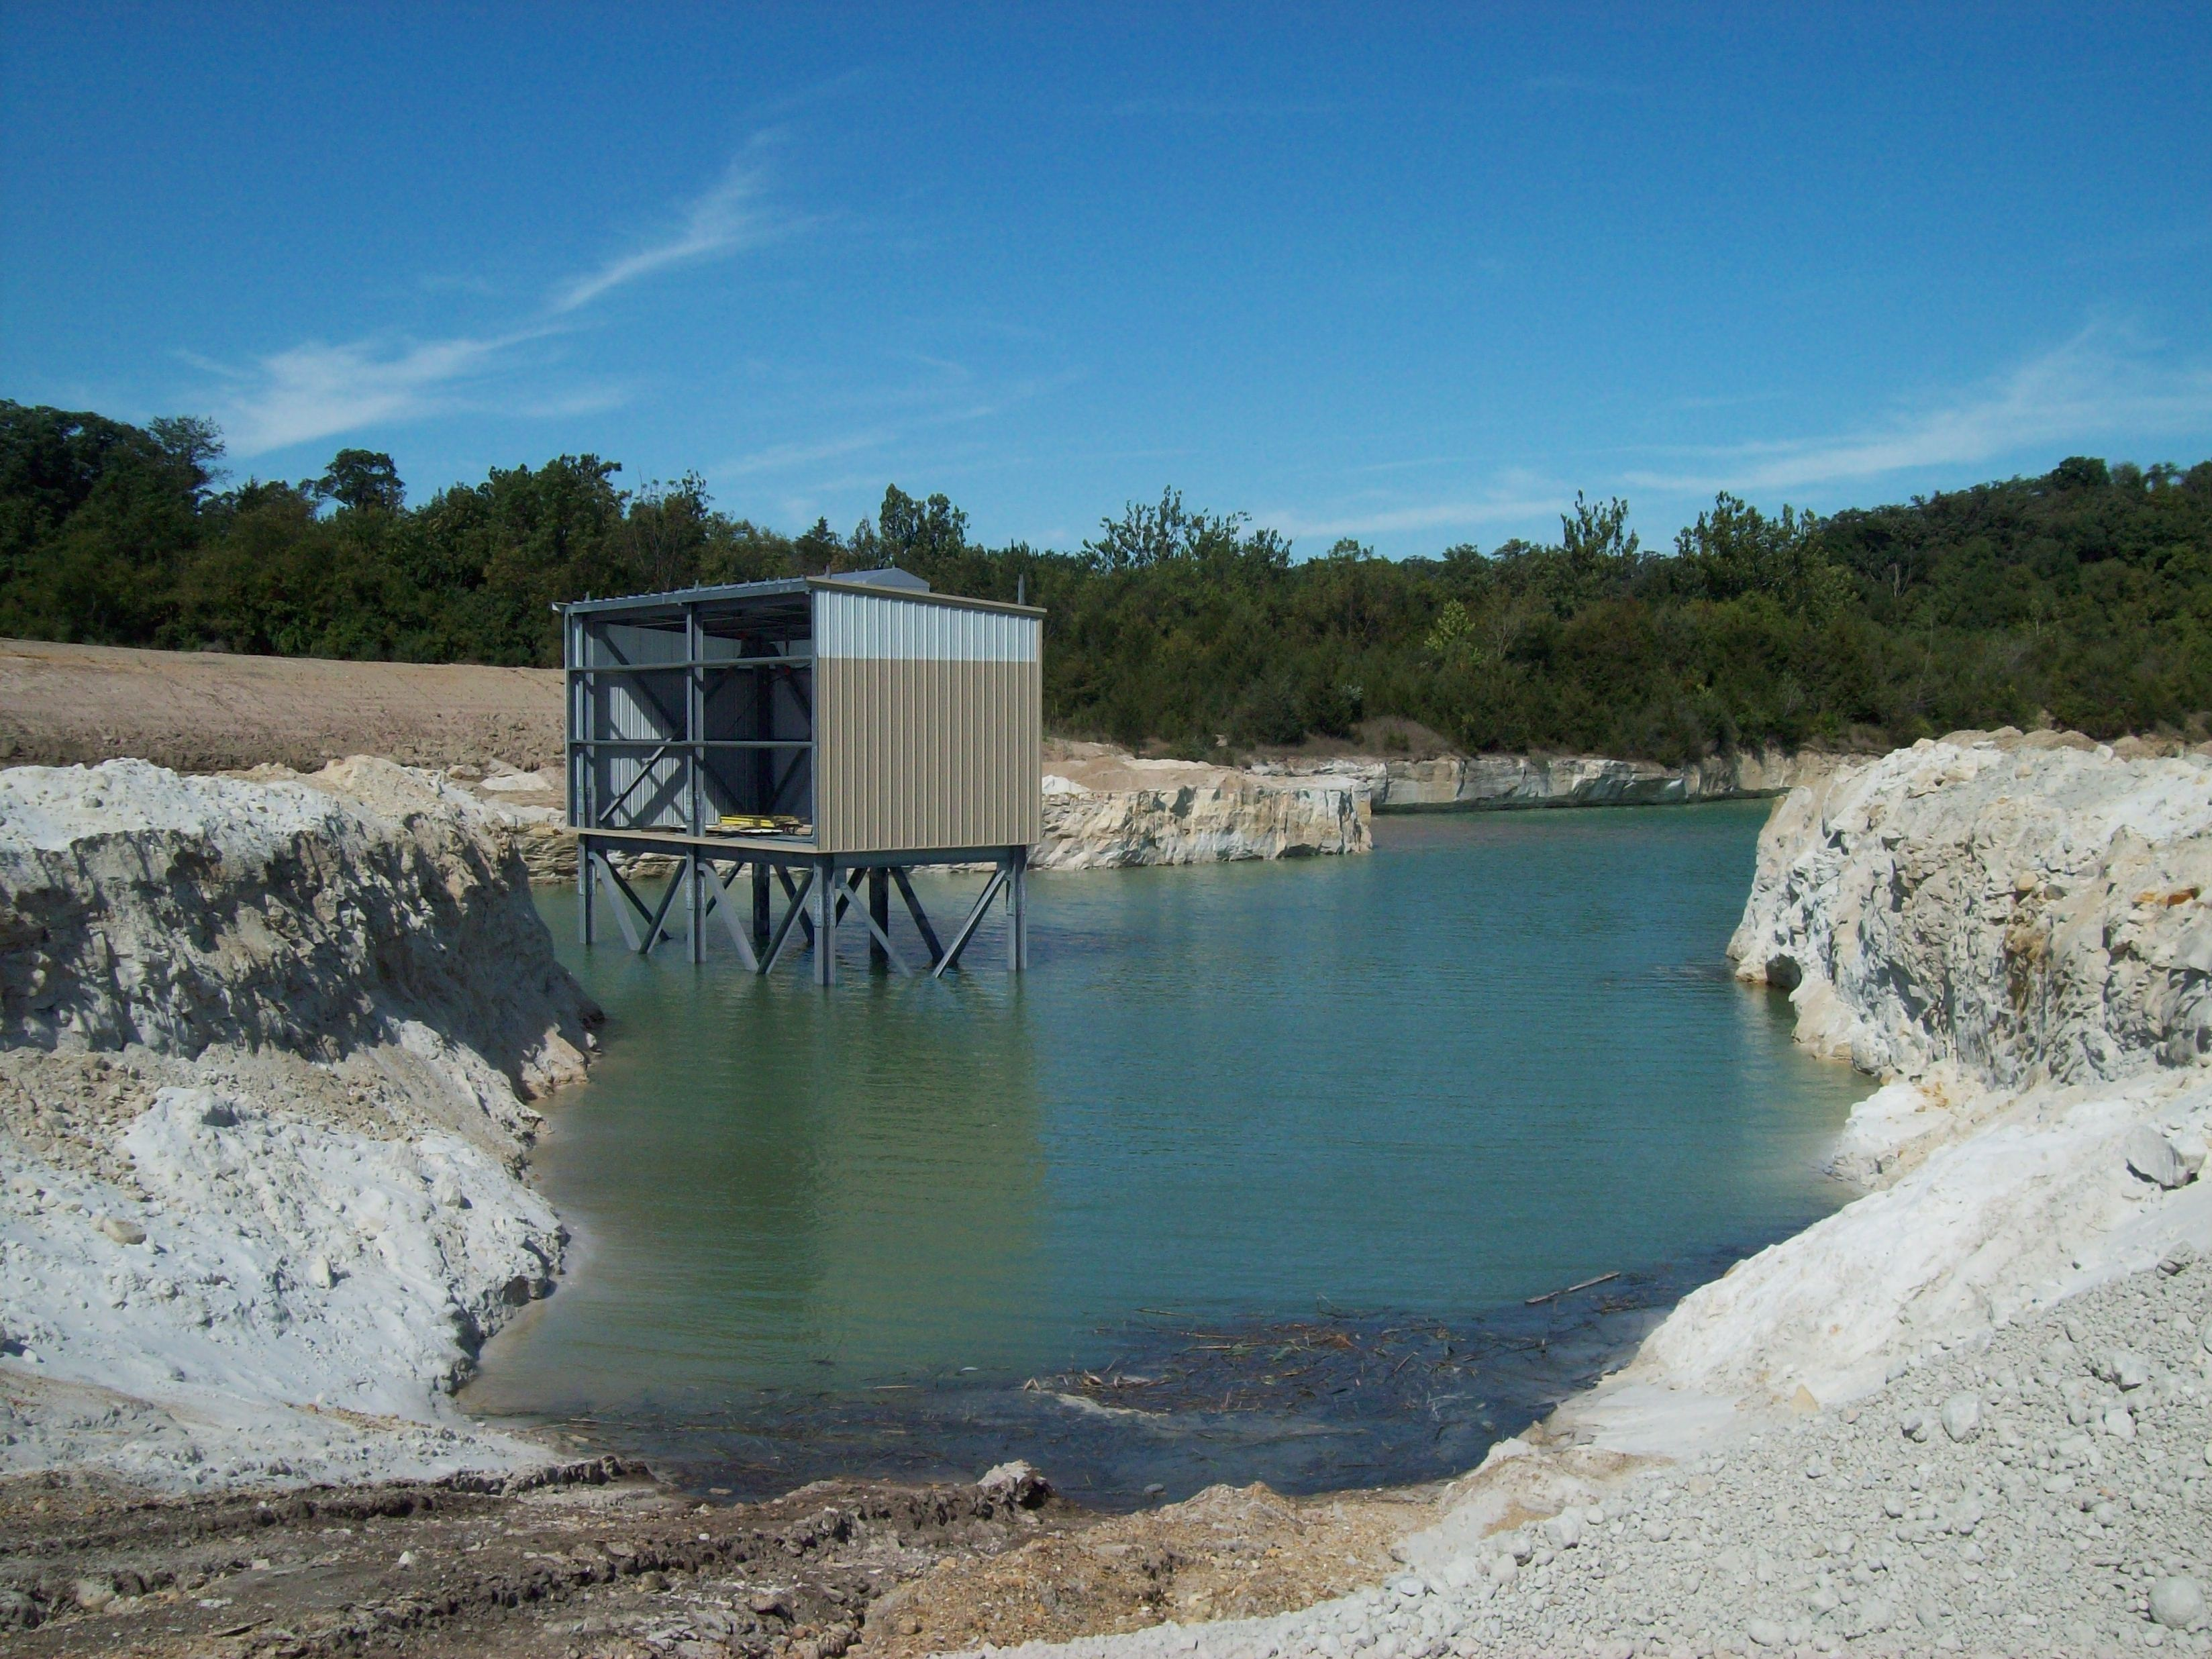 https://0201.nccdn.net/4_2/000/000/076/de9/Pit-9-Pump-house-in-water-3296x2472.jpg